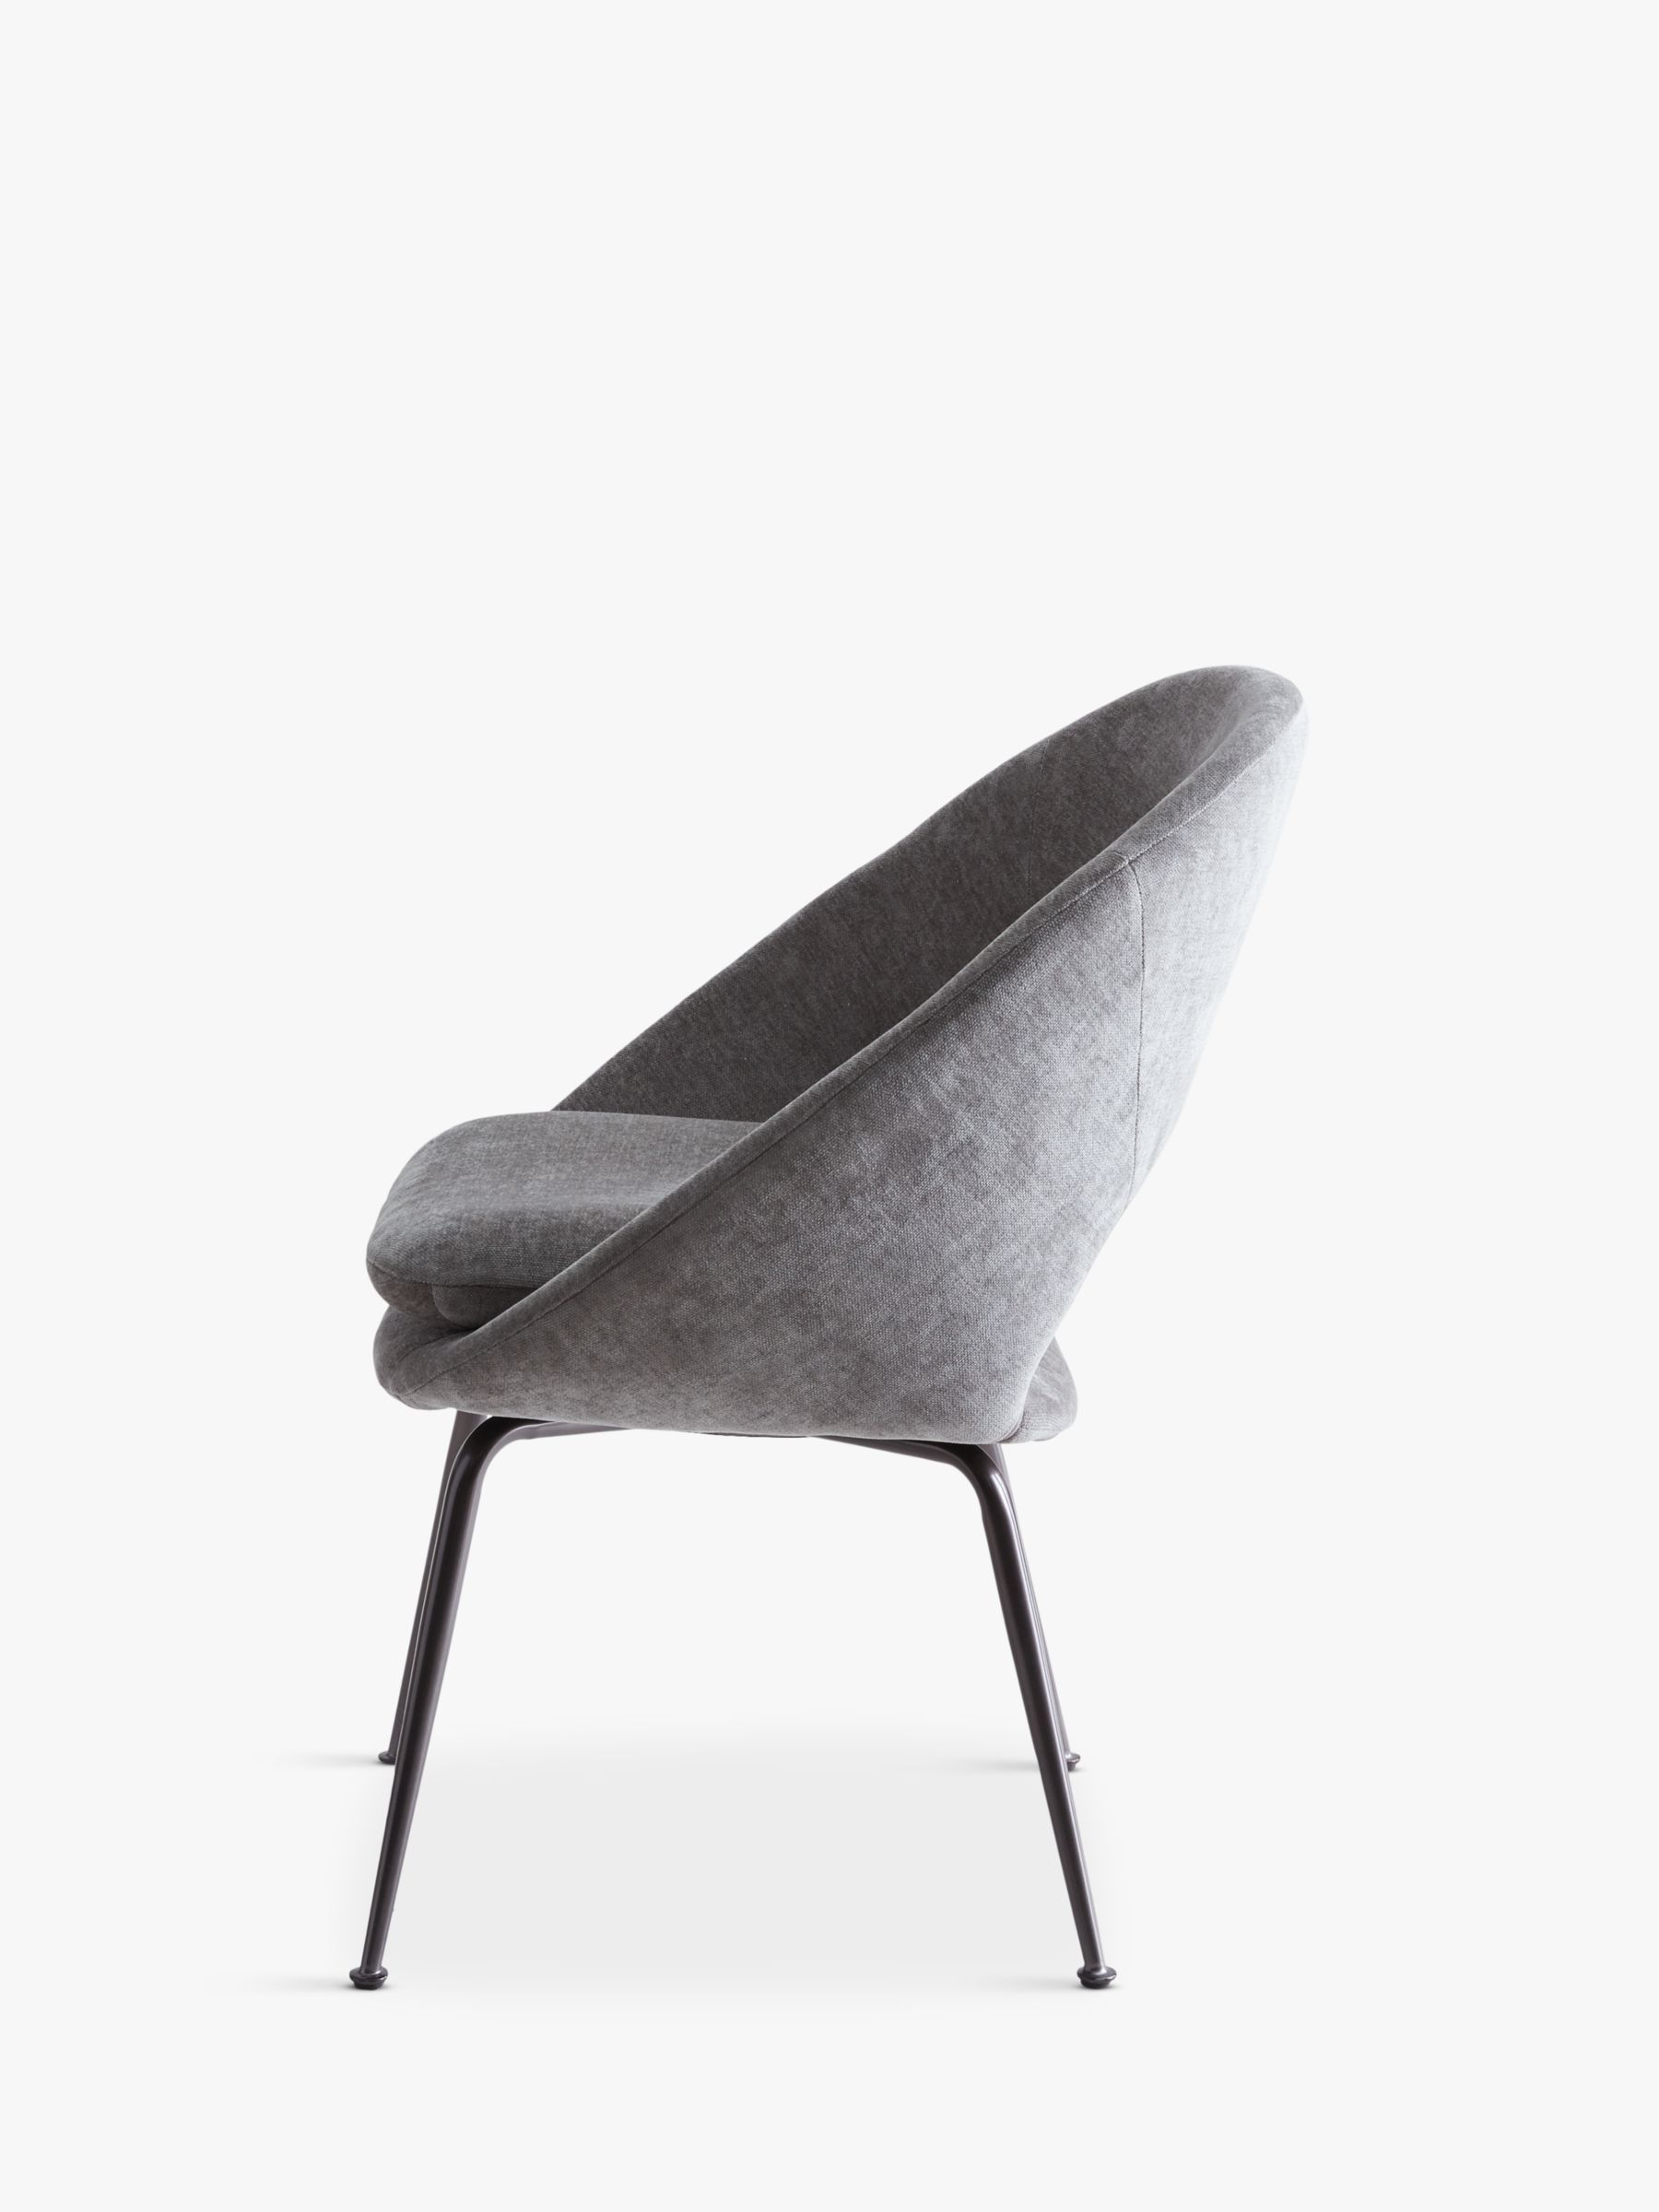 URBNLIVING Folding Chairs Padded Steel Stools with Soft Fabric Velvet Cushions Grey